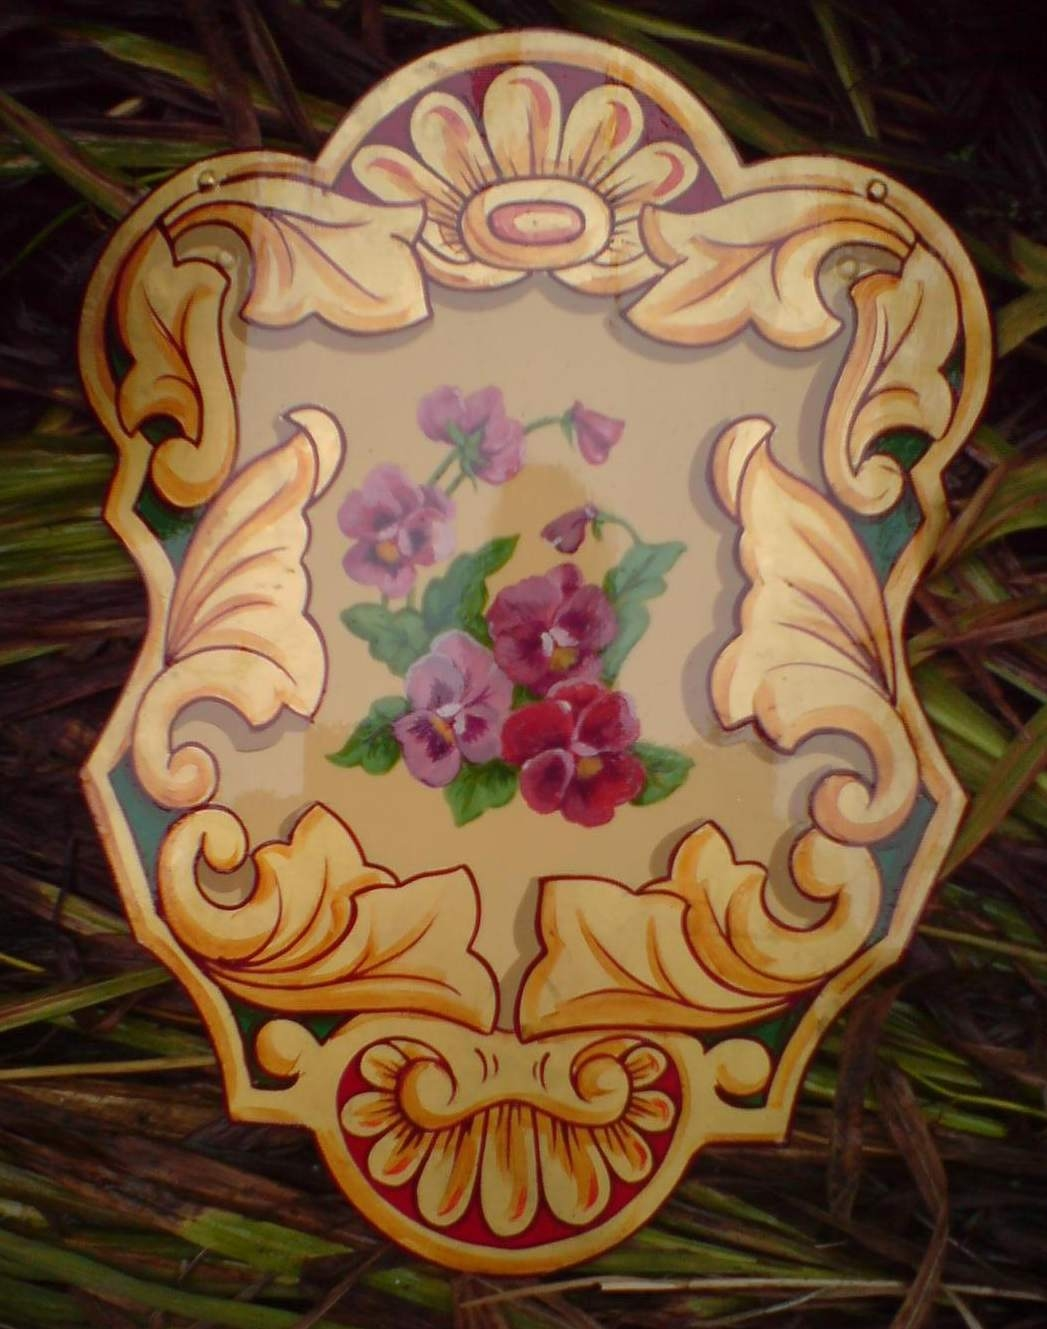 Fairground painting. Shield with gold leaf scrolls on edges with purple pansies in centre.